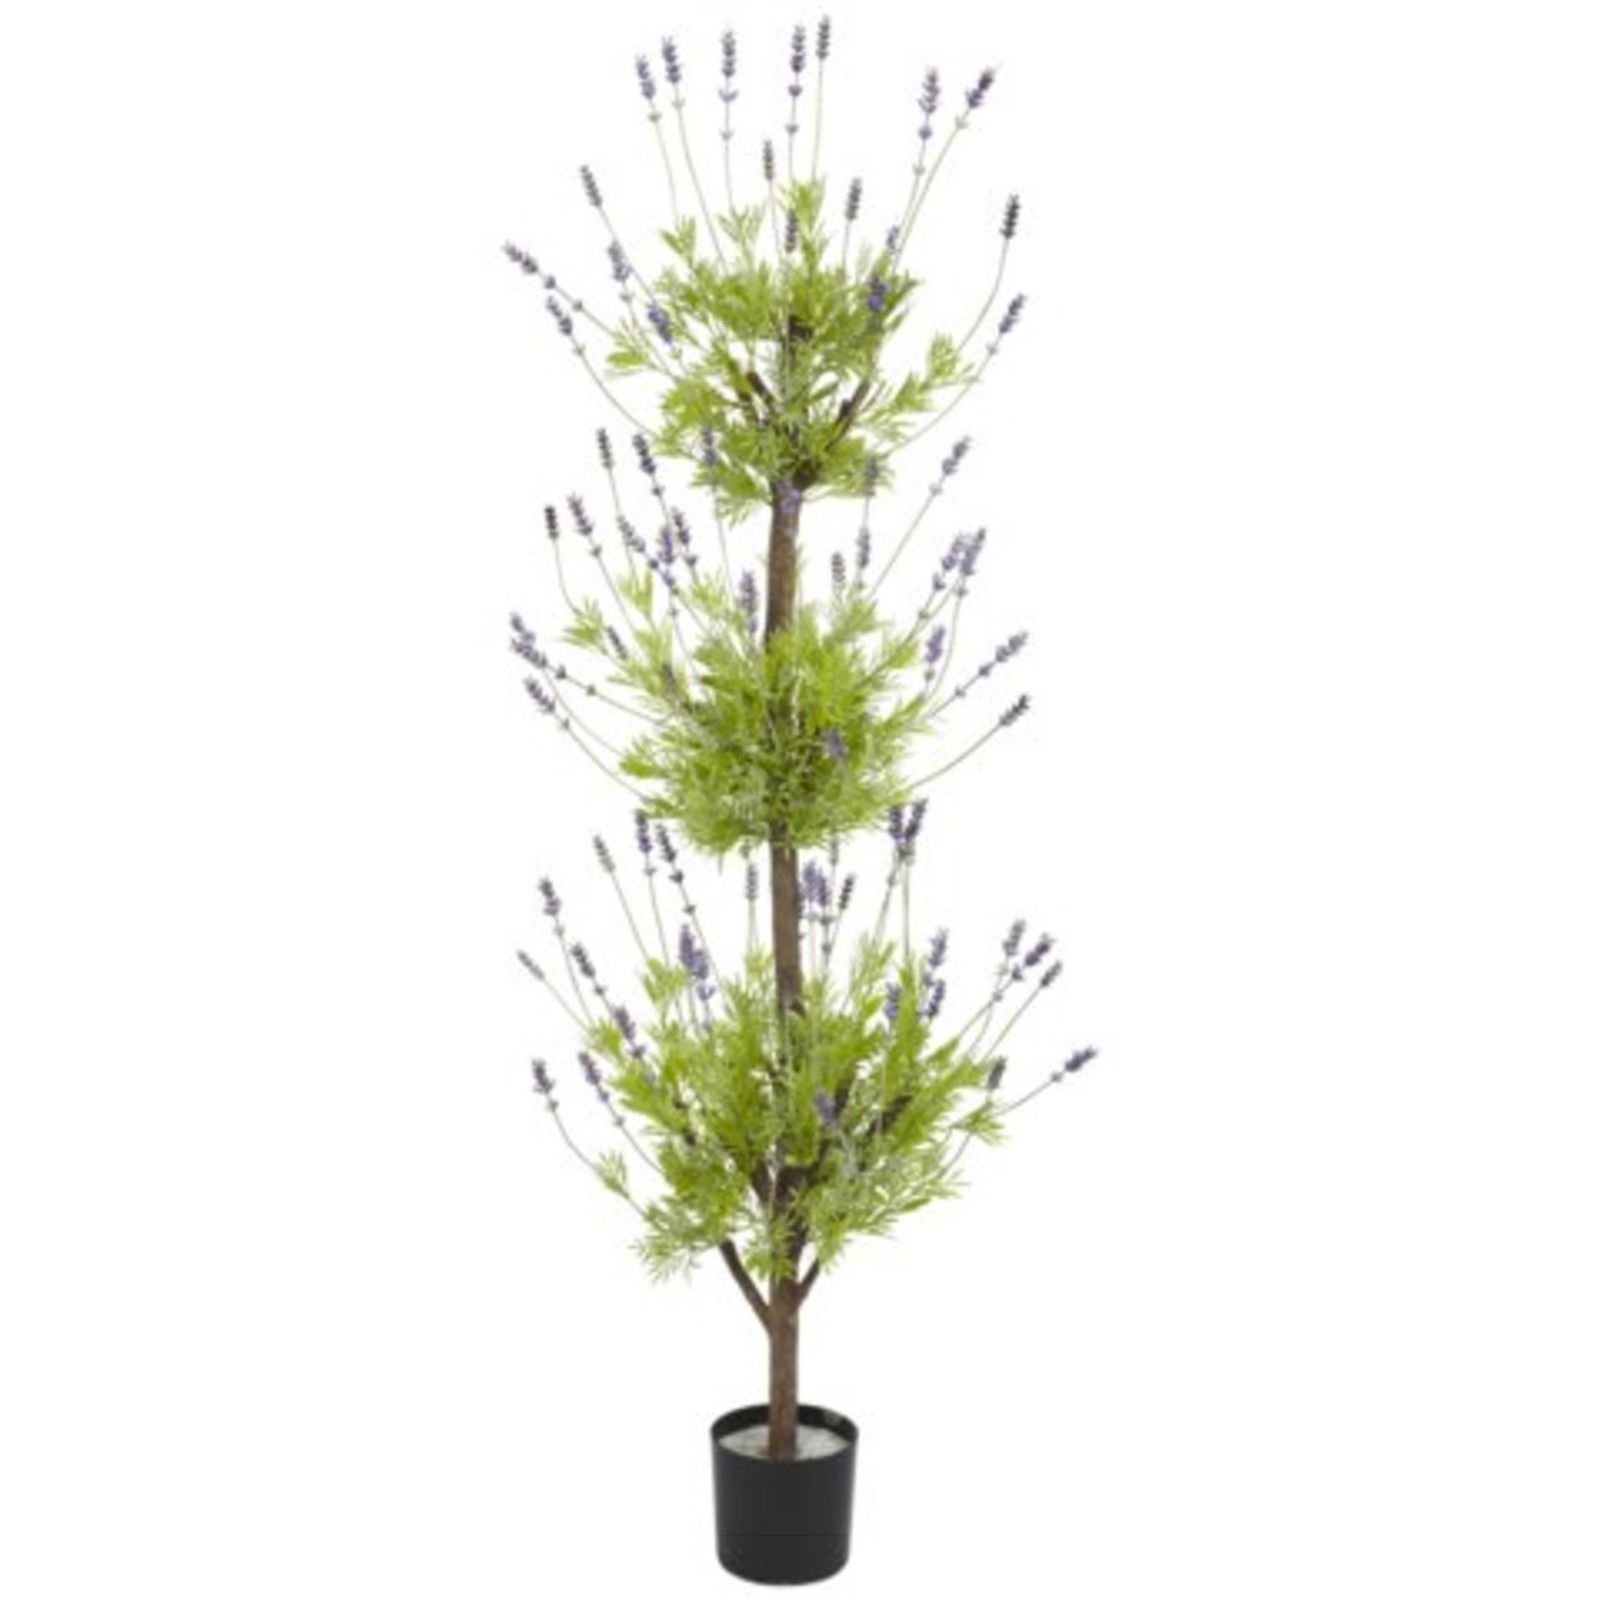 Decorative Natural Looking Artificial Potted 4' Lavender Topiary Silk Tree Plant by SPHTOEO